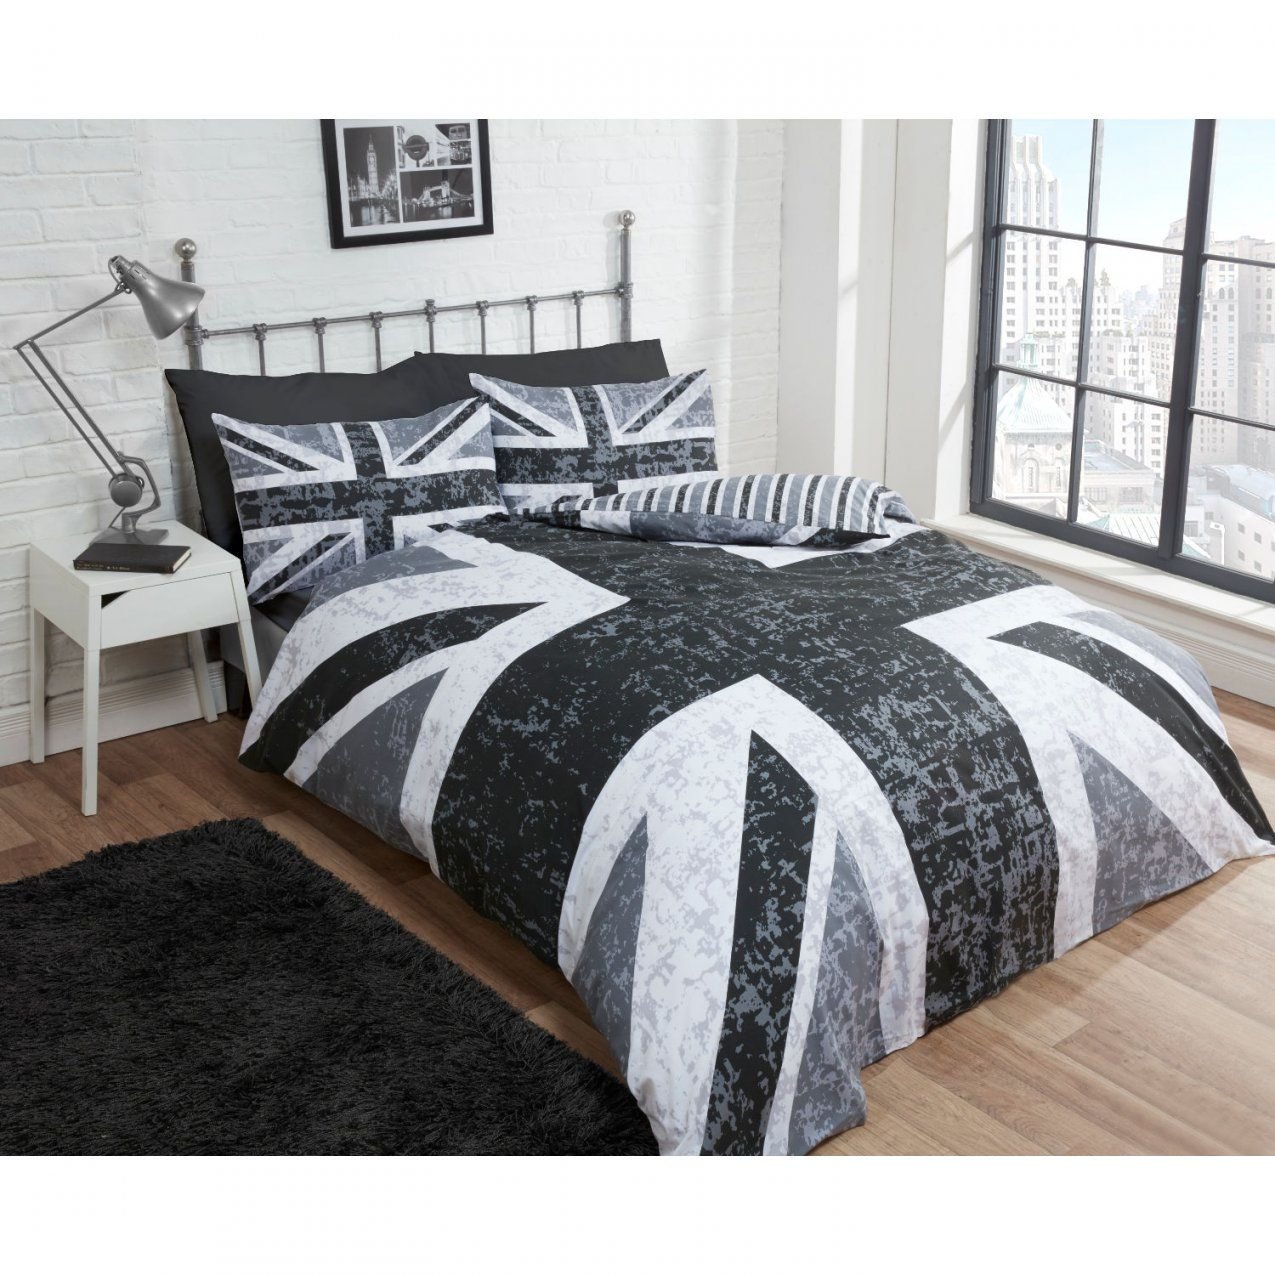 Cascade Union Jack Duvet Cover Set  Next Day  Select Day Delivery von Bettwäsche Union Jack Bild